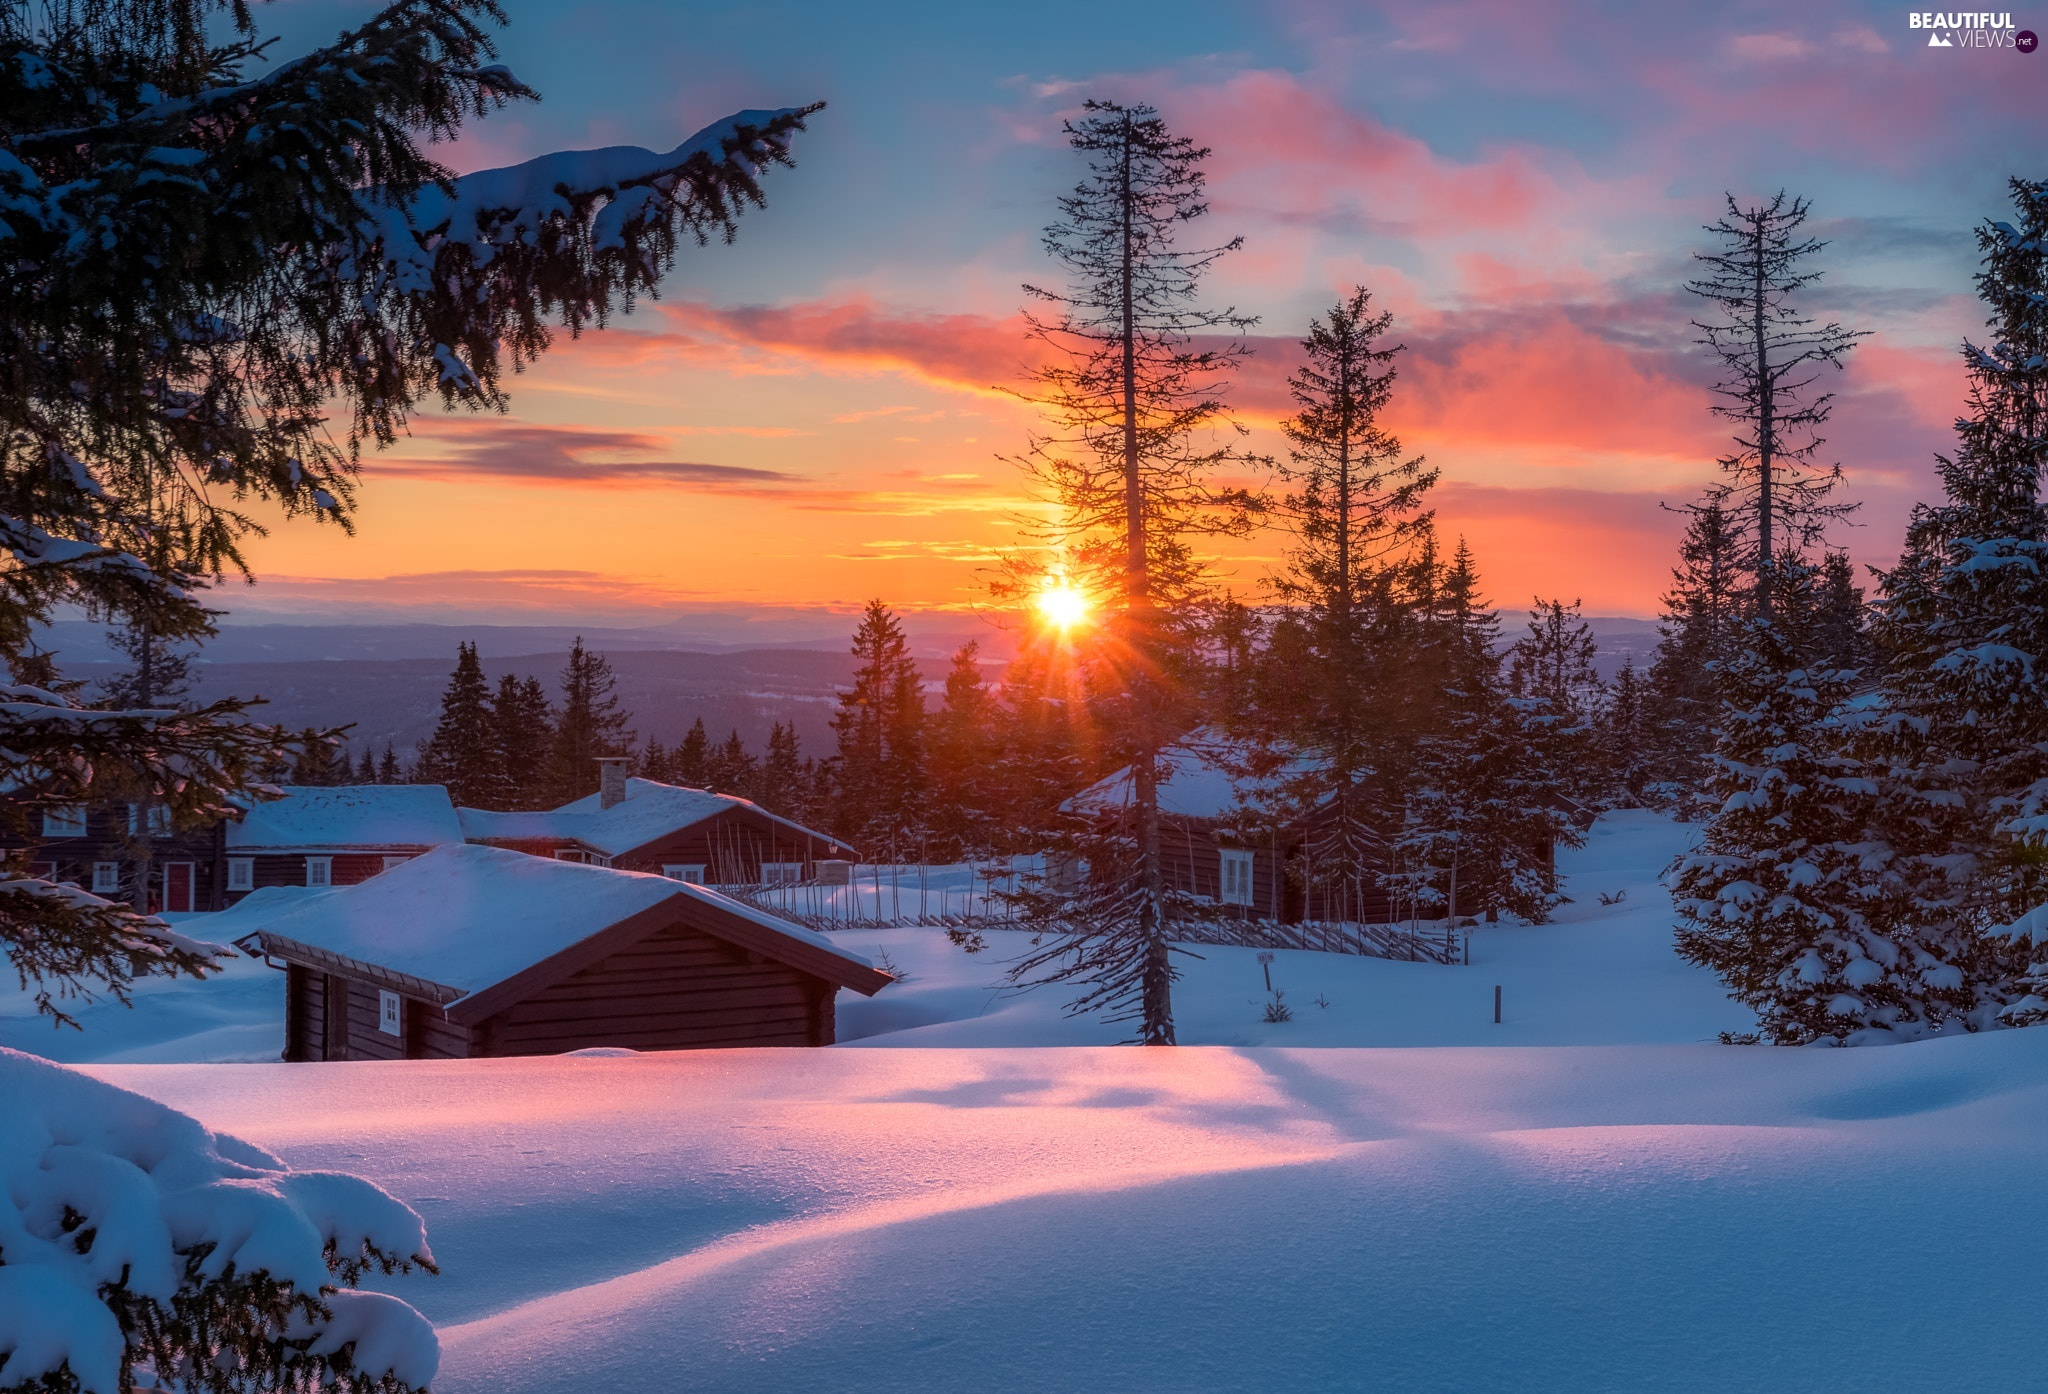 viewes, Great Sunsets, Houses, trees, winter